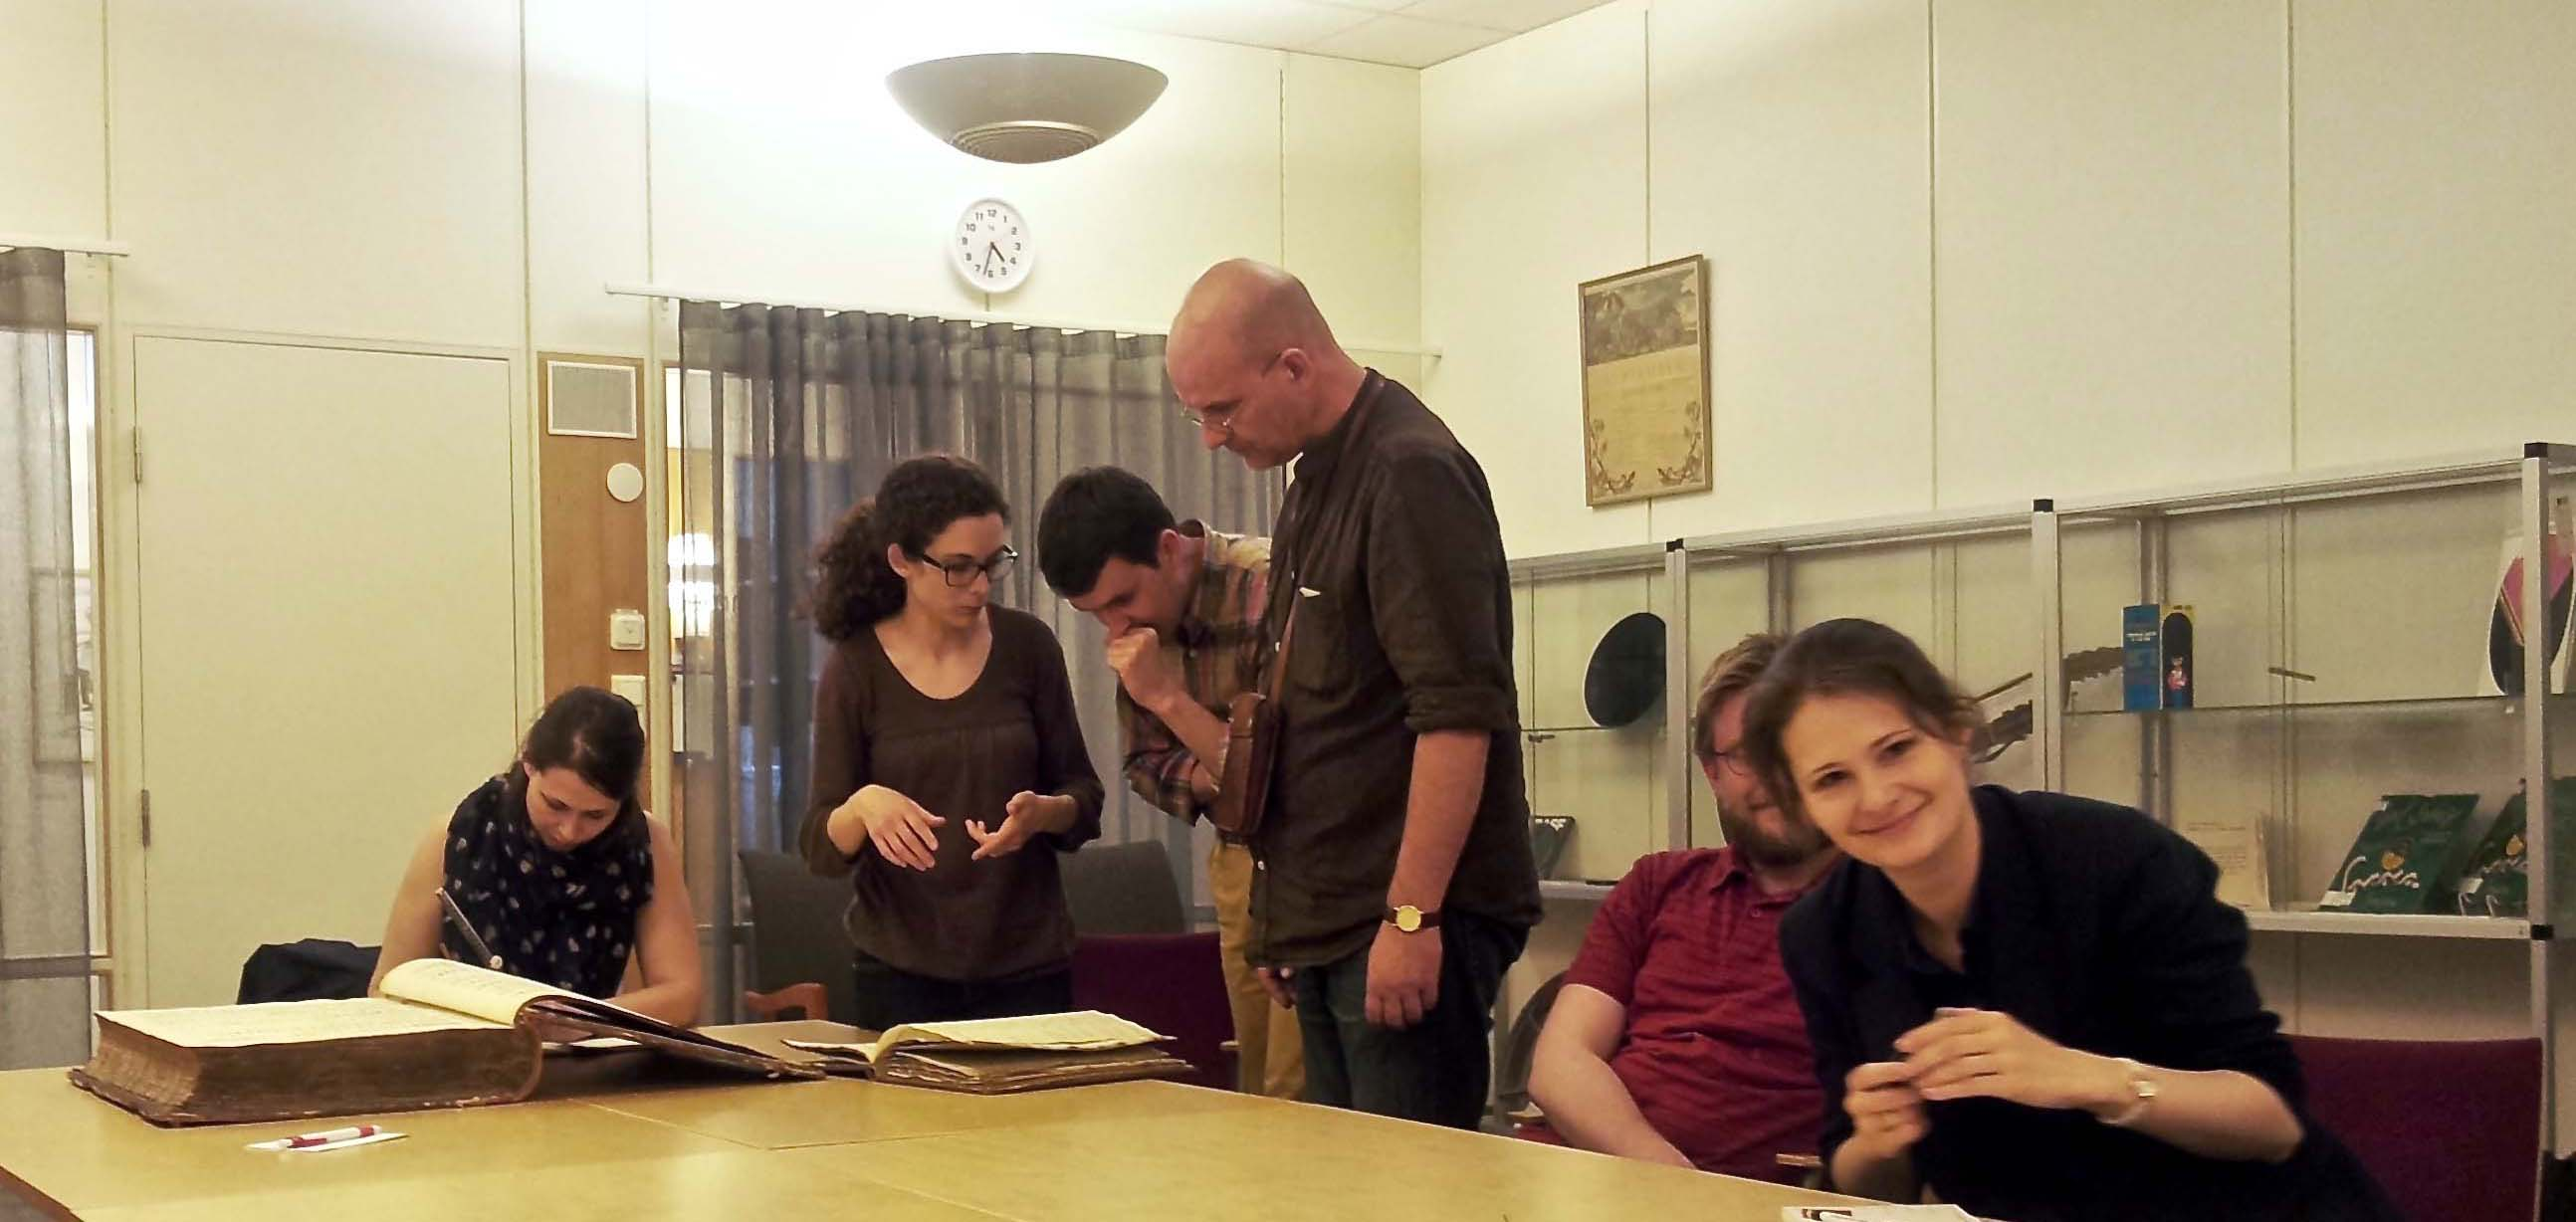 STINT project members looking at a manuscript. Photo: Ester Lebedinski